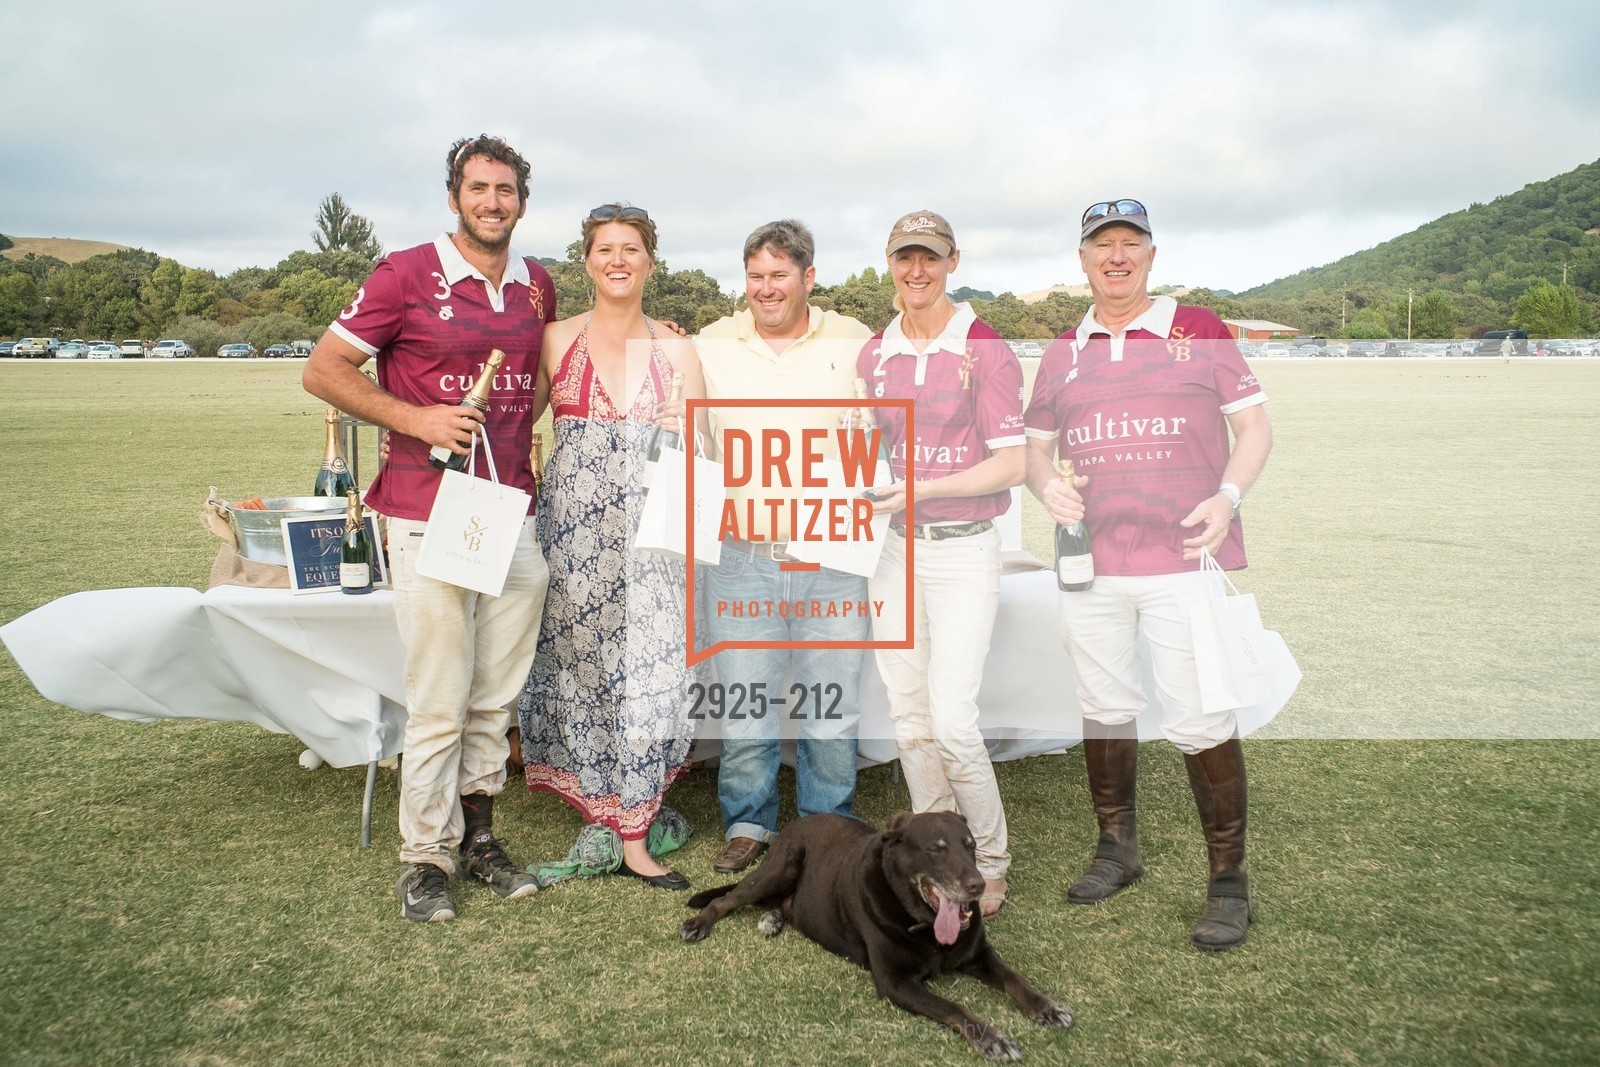 Jess Scheraga, Margo Buchanan, Jody Harris, Heather Lake, Richard Biley, Stick & Ball Oyster Cup Polo Tournament, Cerro Pampa Polo Club, July 25th, 2015,Drew Altizer, Drew Altizer Photography, full-service agency, private events, San Francisco photographer, photographer california